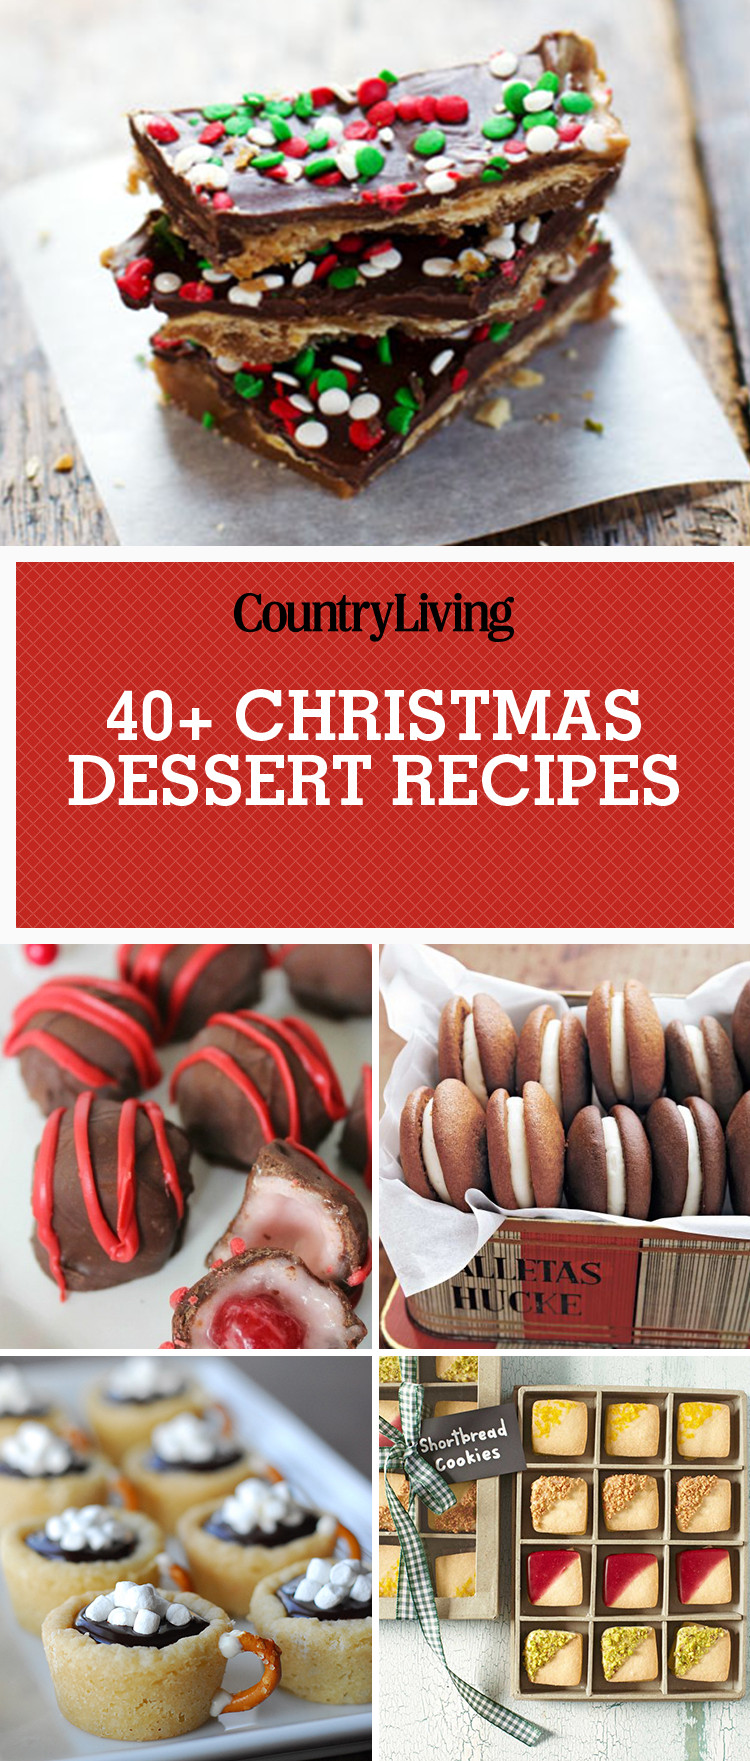 Easy Christmas Desserts Pinterest  45 Easy Christmas Desserts Best Recipes and Ideas for